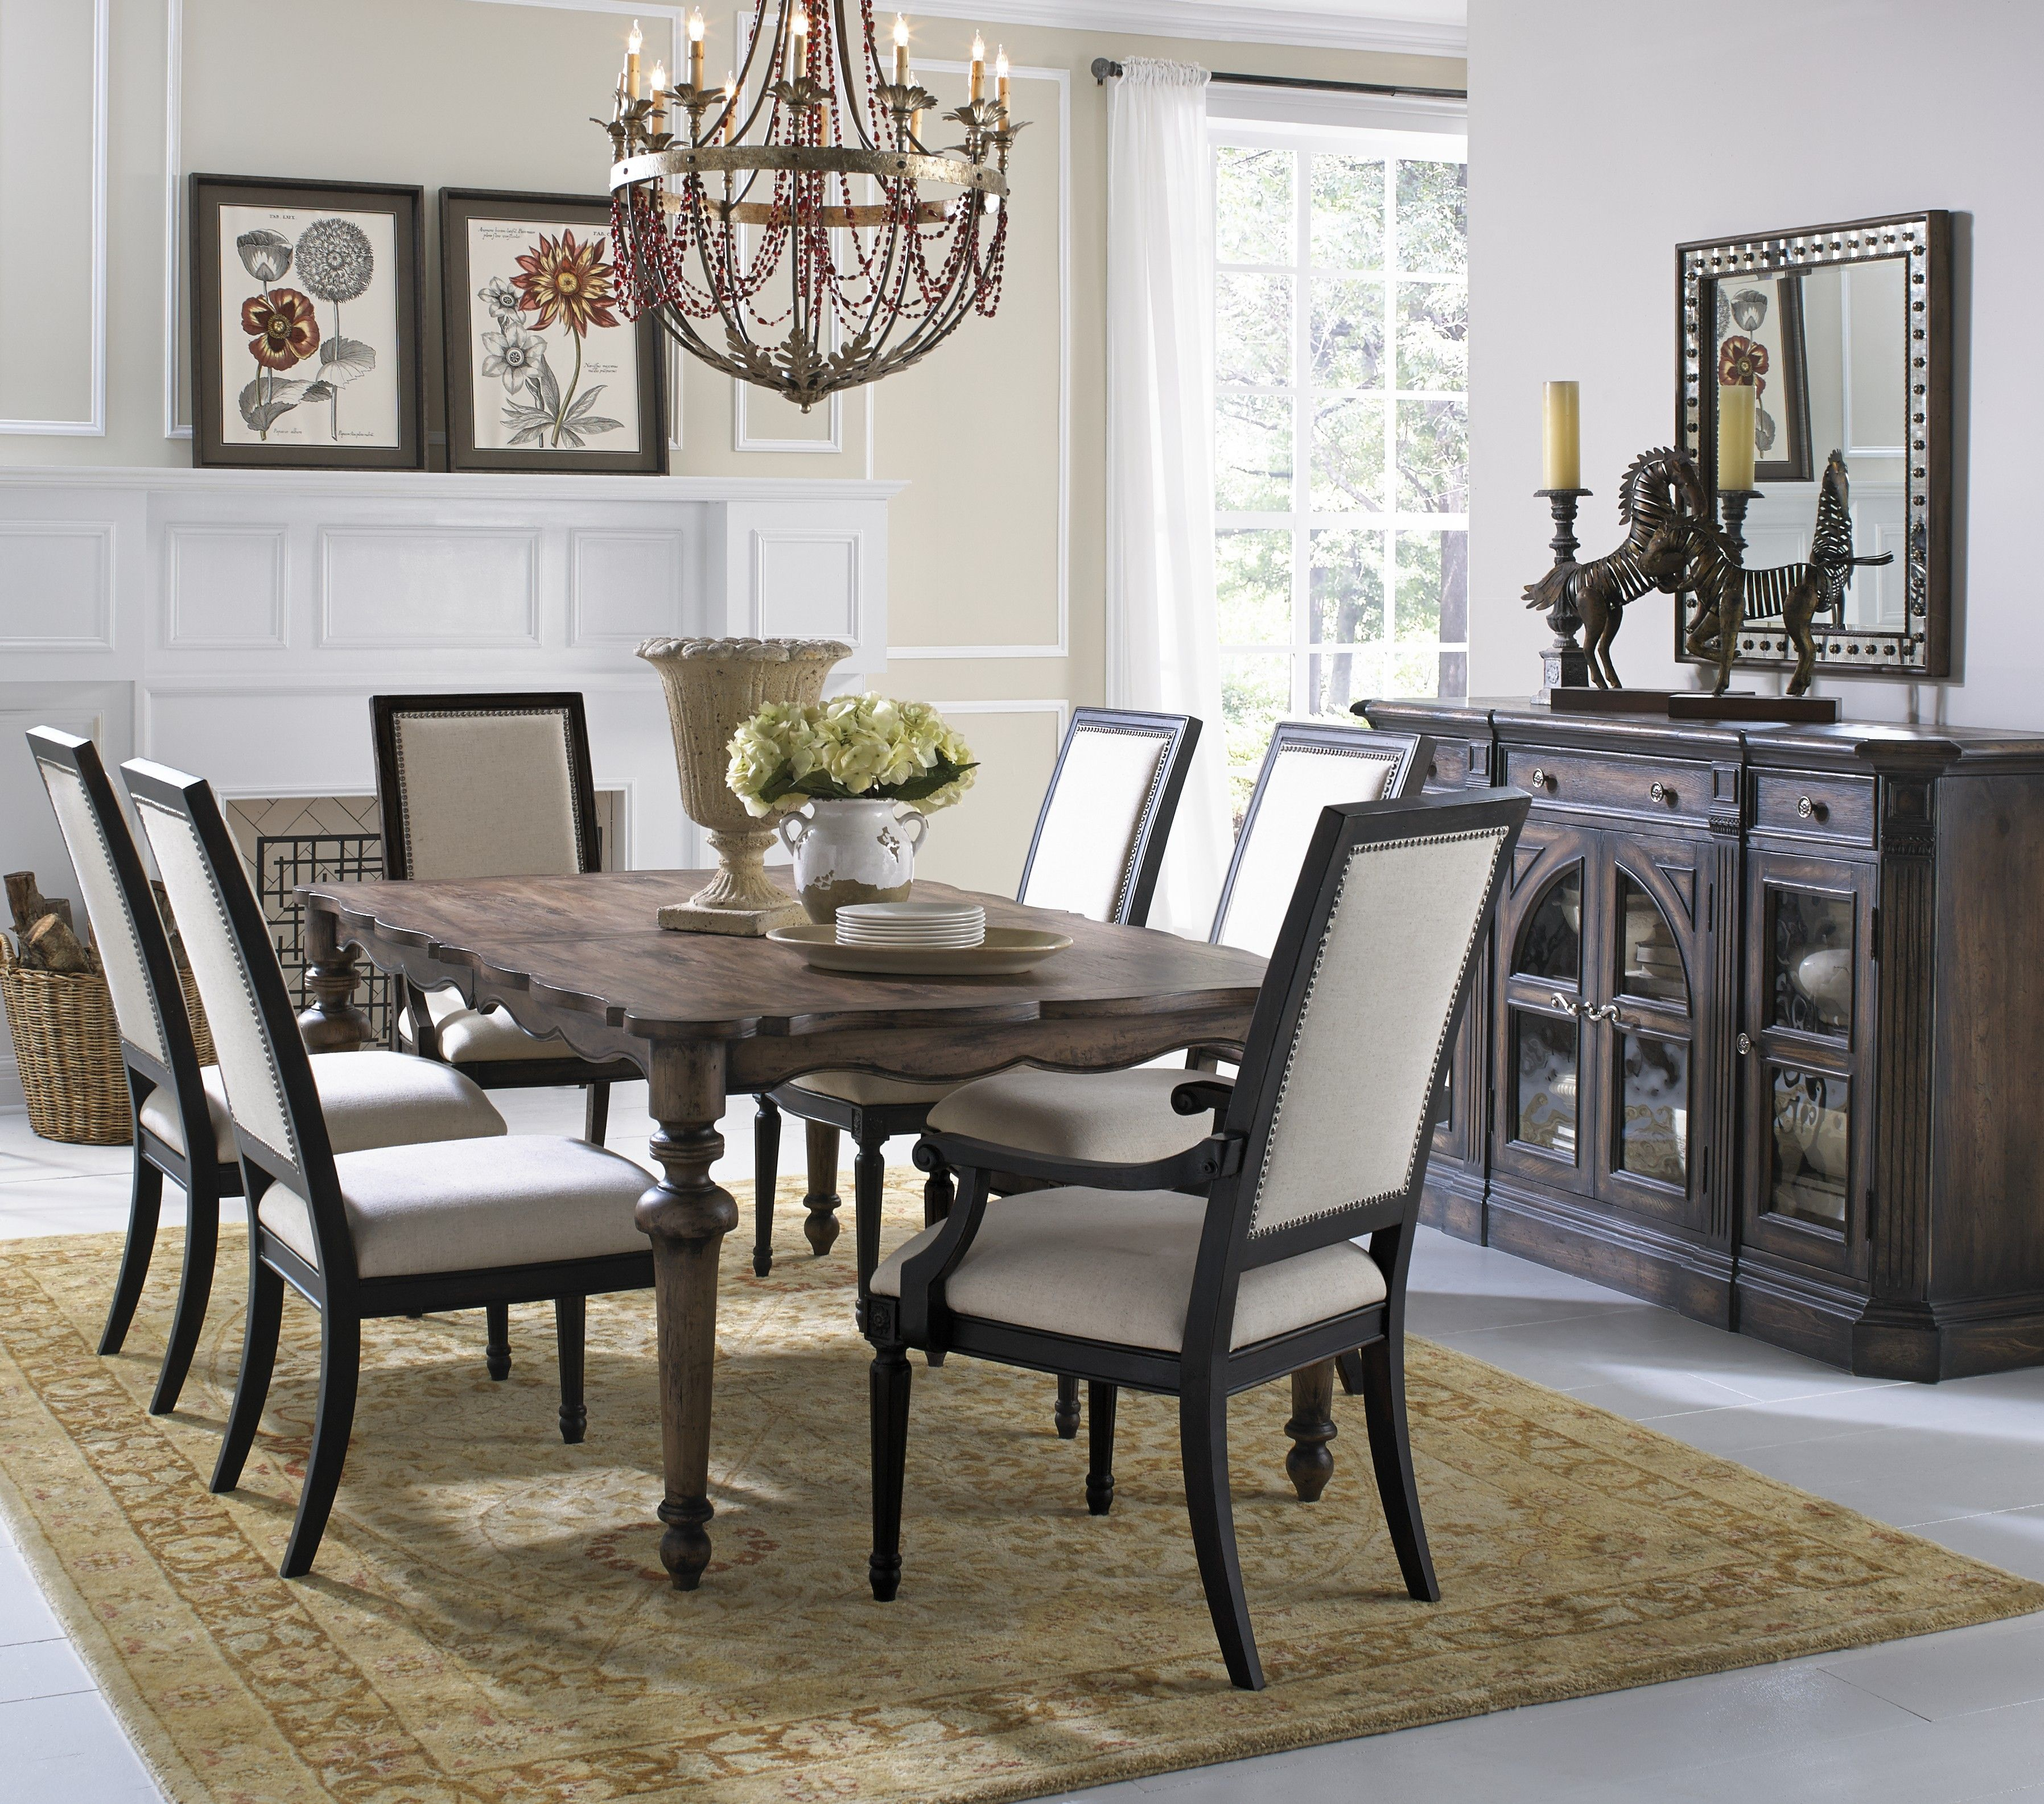 Dark Wood Dining Table With Scalloped Edges From Accentrics Home By Pulaski  Furniture.